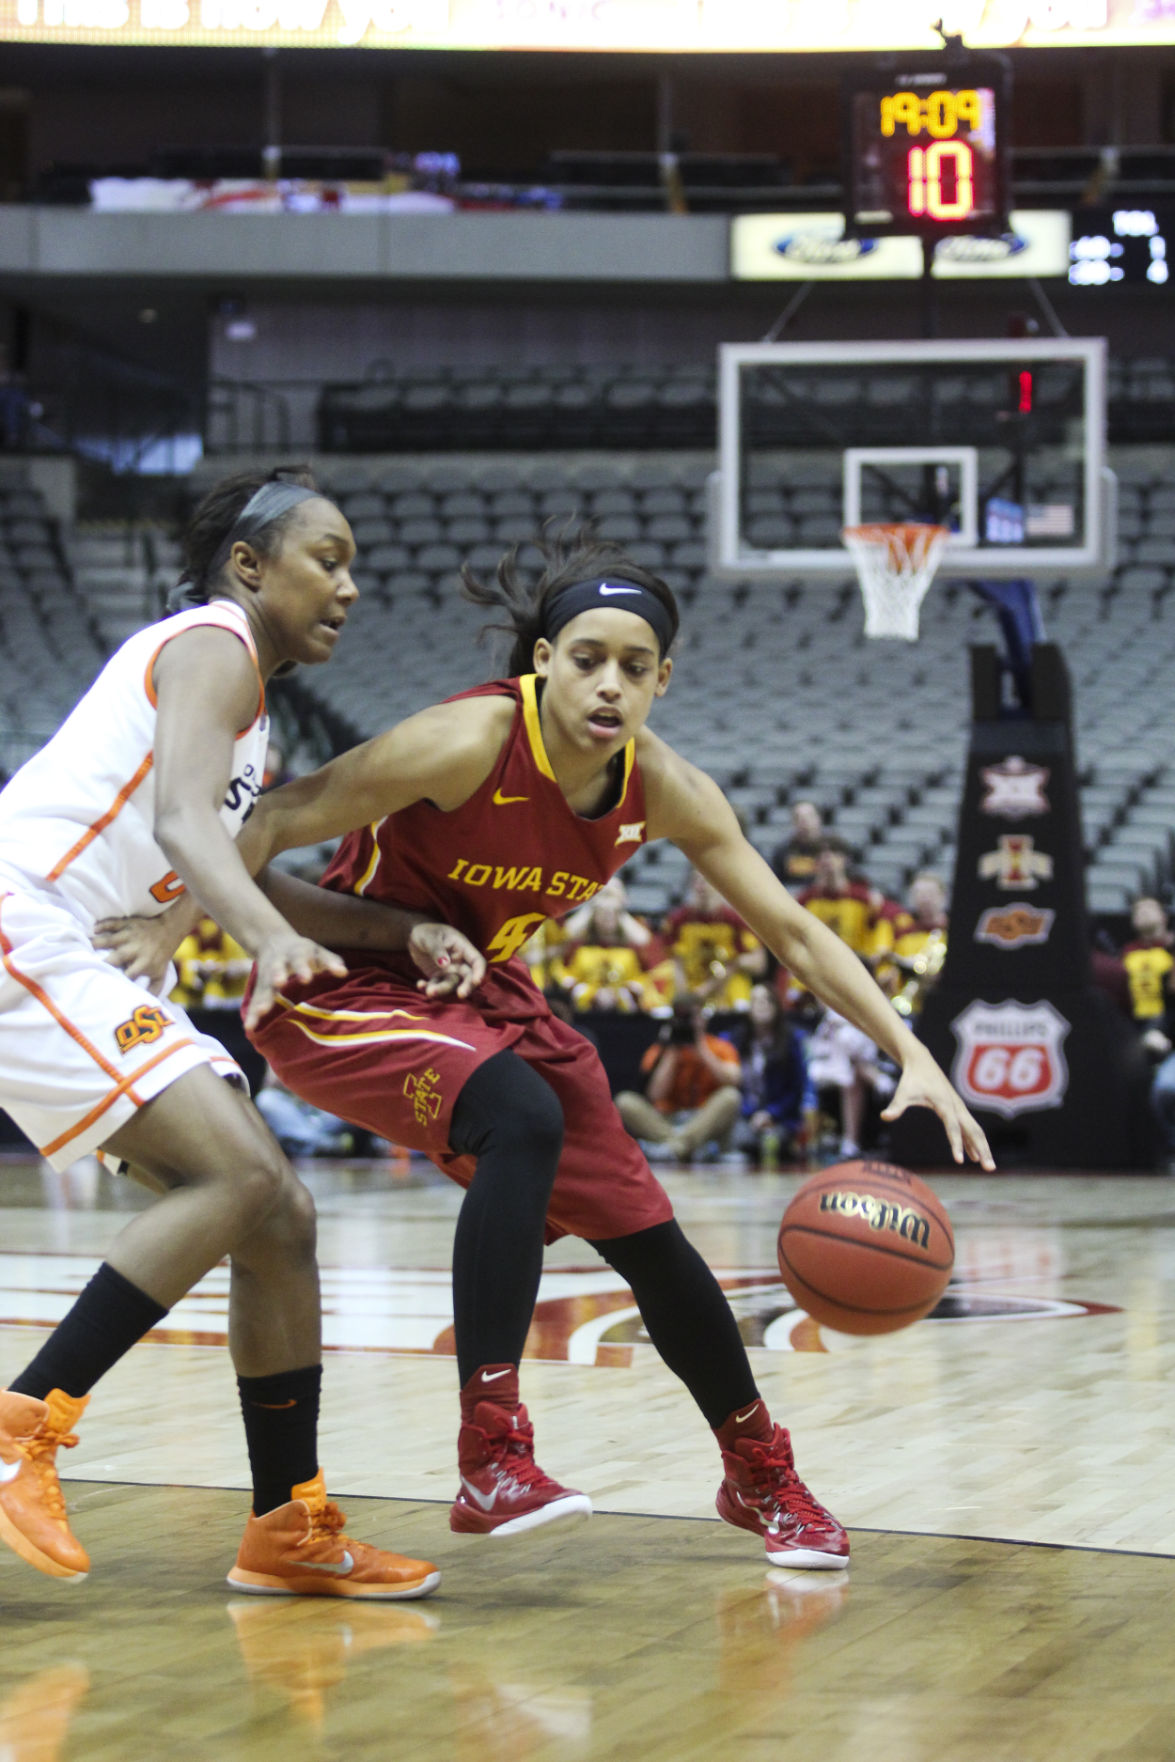 Senior guard Nikki Moody works her way around an opposing player against Oklahoma State in the third game of the 2015 Big 12 Championship in Dallas, Texas. The Cyclones fell to the Cowgirls 67-58. Photo by: Kelby Wingert/Iowa State Daily.